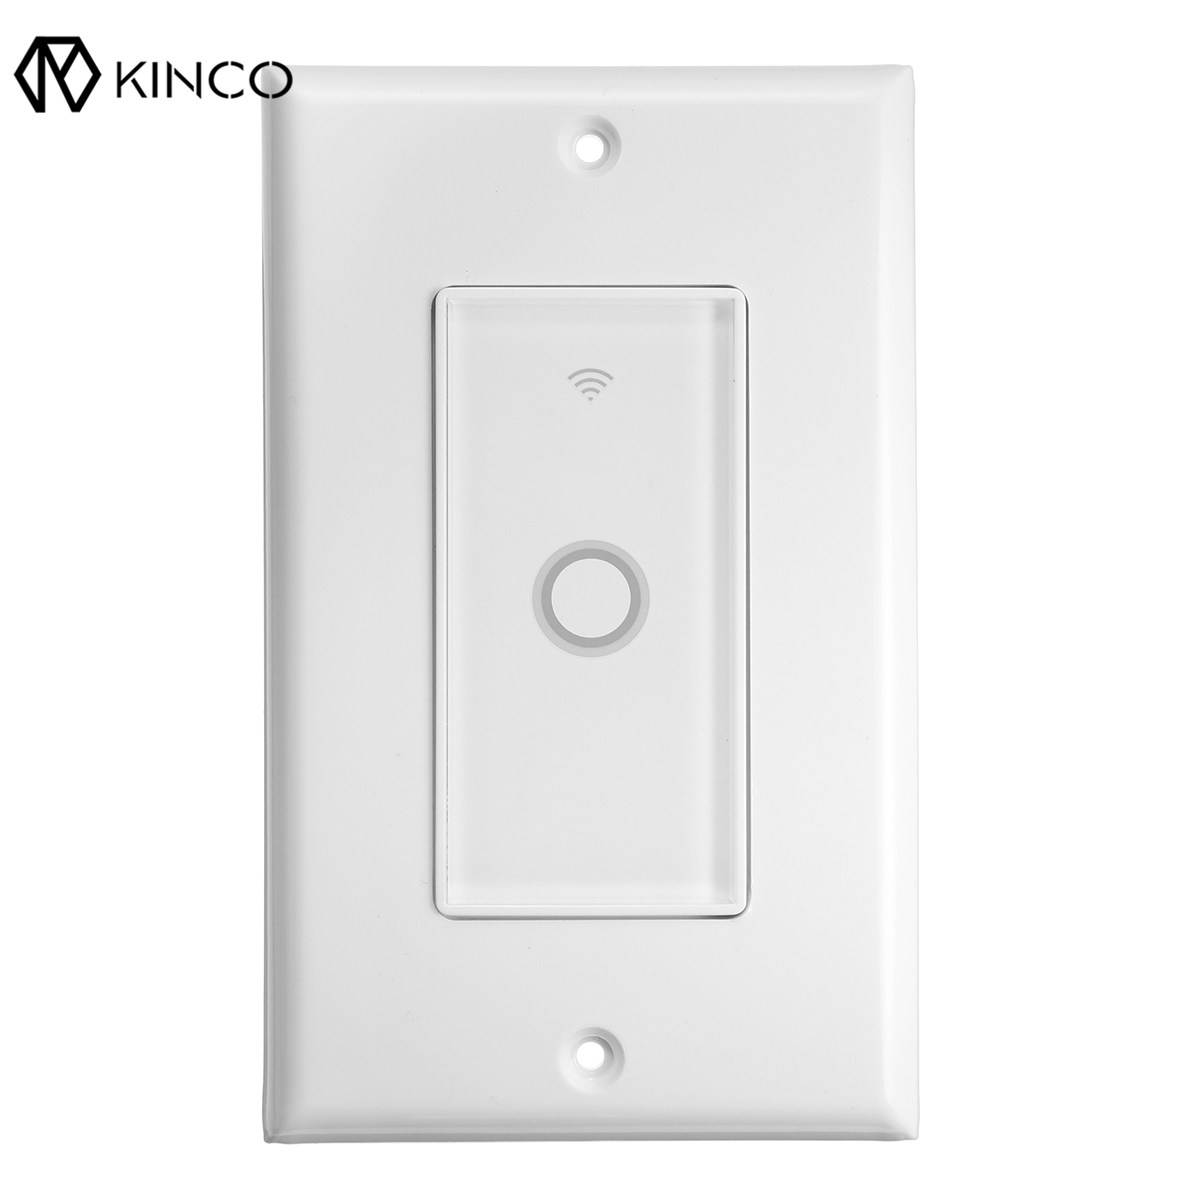 Kinco 110V WIFI Smart Wall Switch Touch Panel Timing APP Remote Control For Alexa/Google Home Assistant